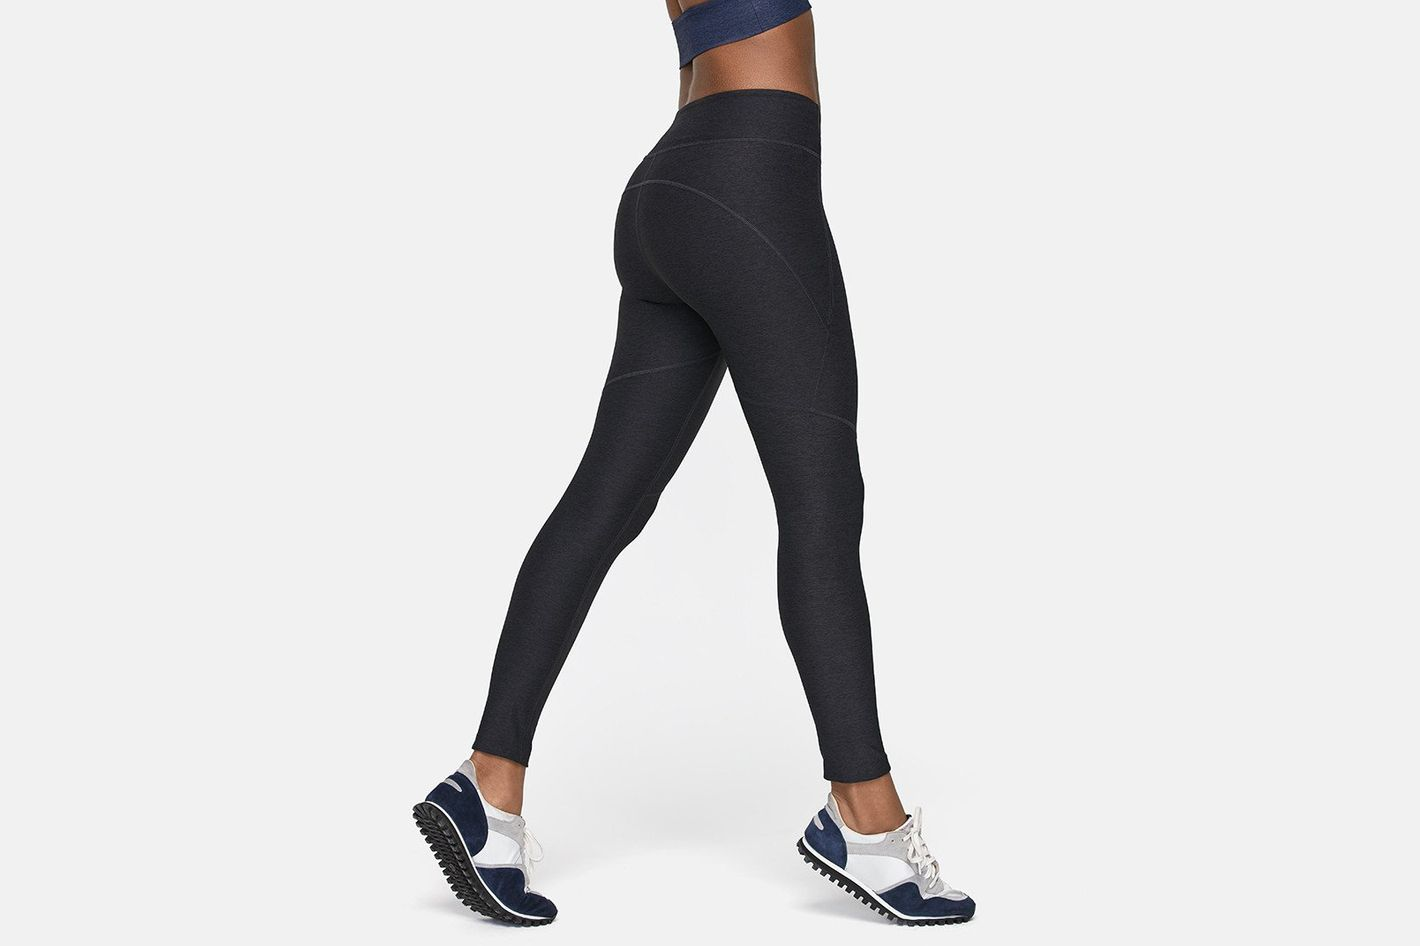 Best Black Workout Leggings for Your Butt